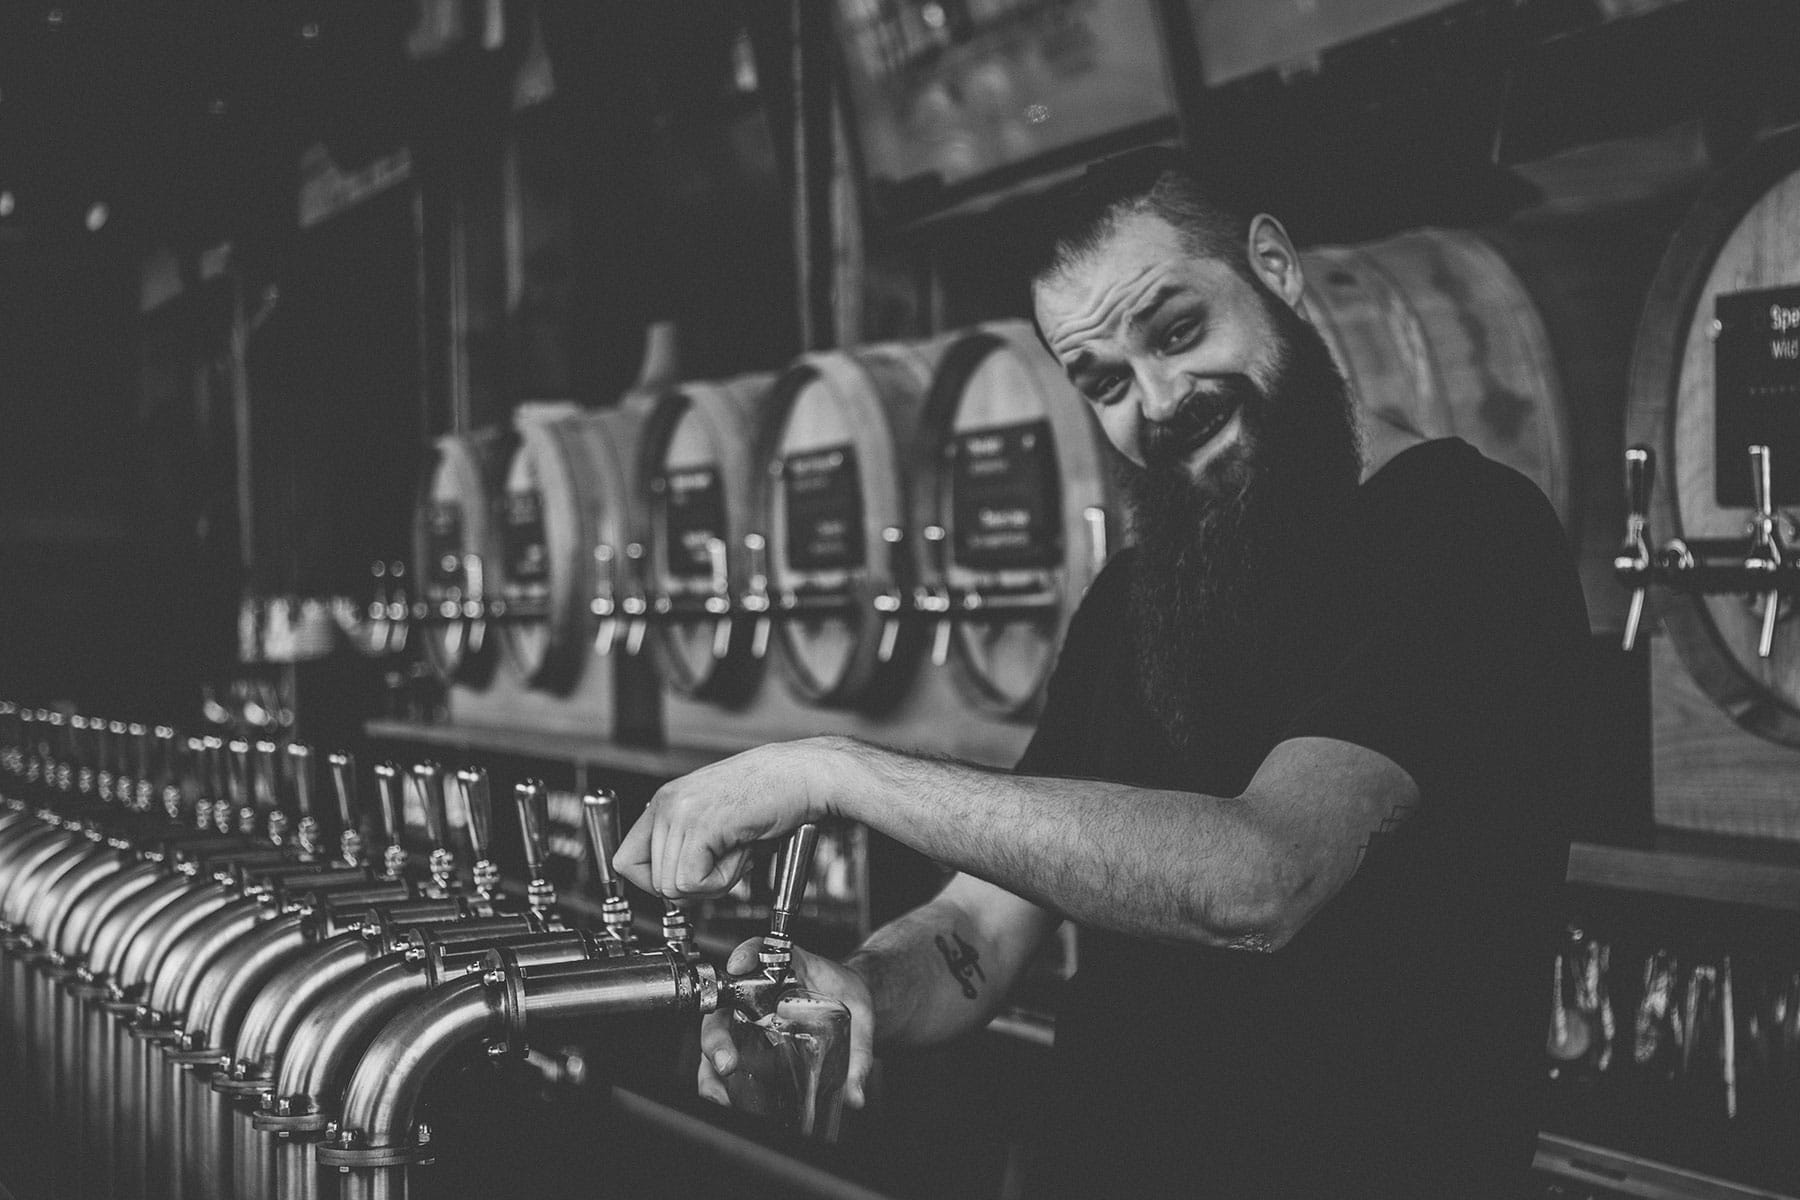 A bartender pouring beer from taps